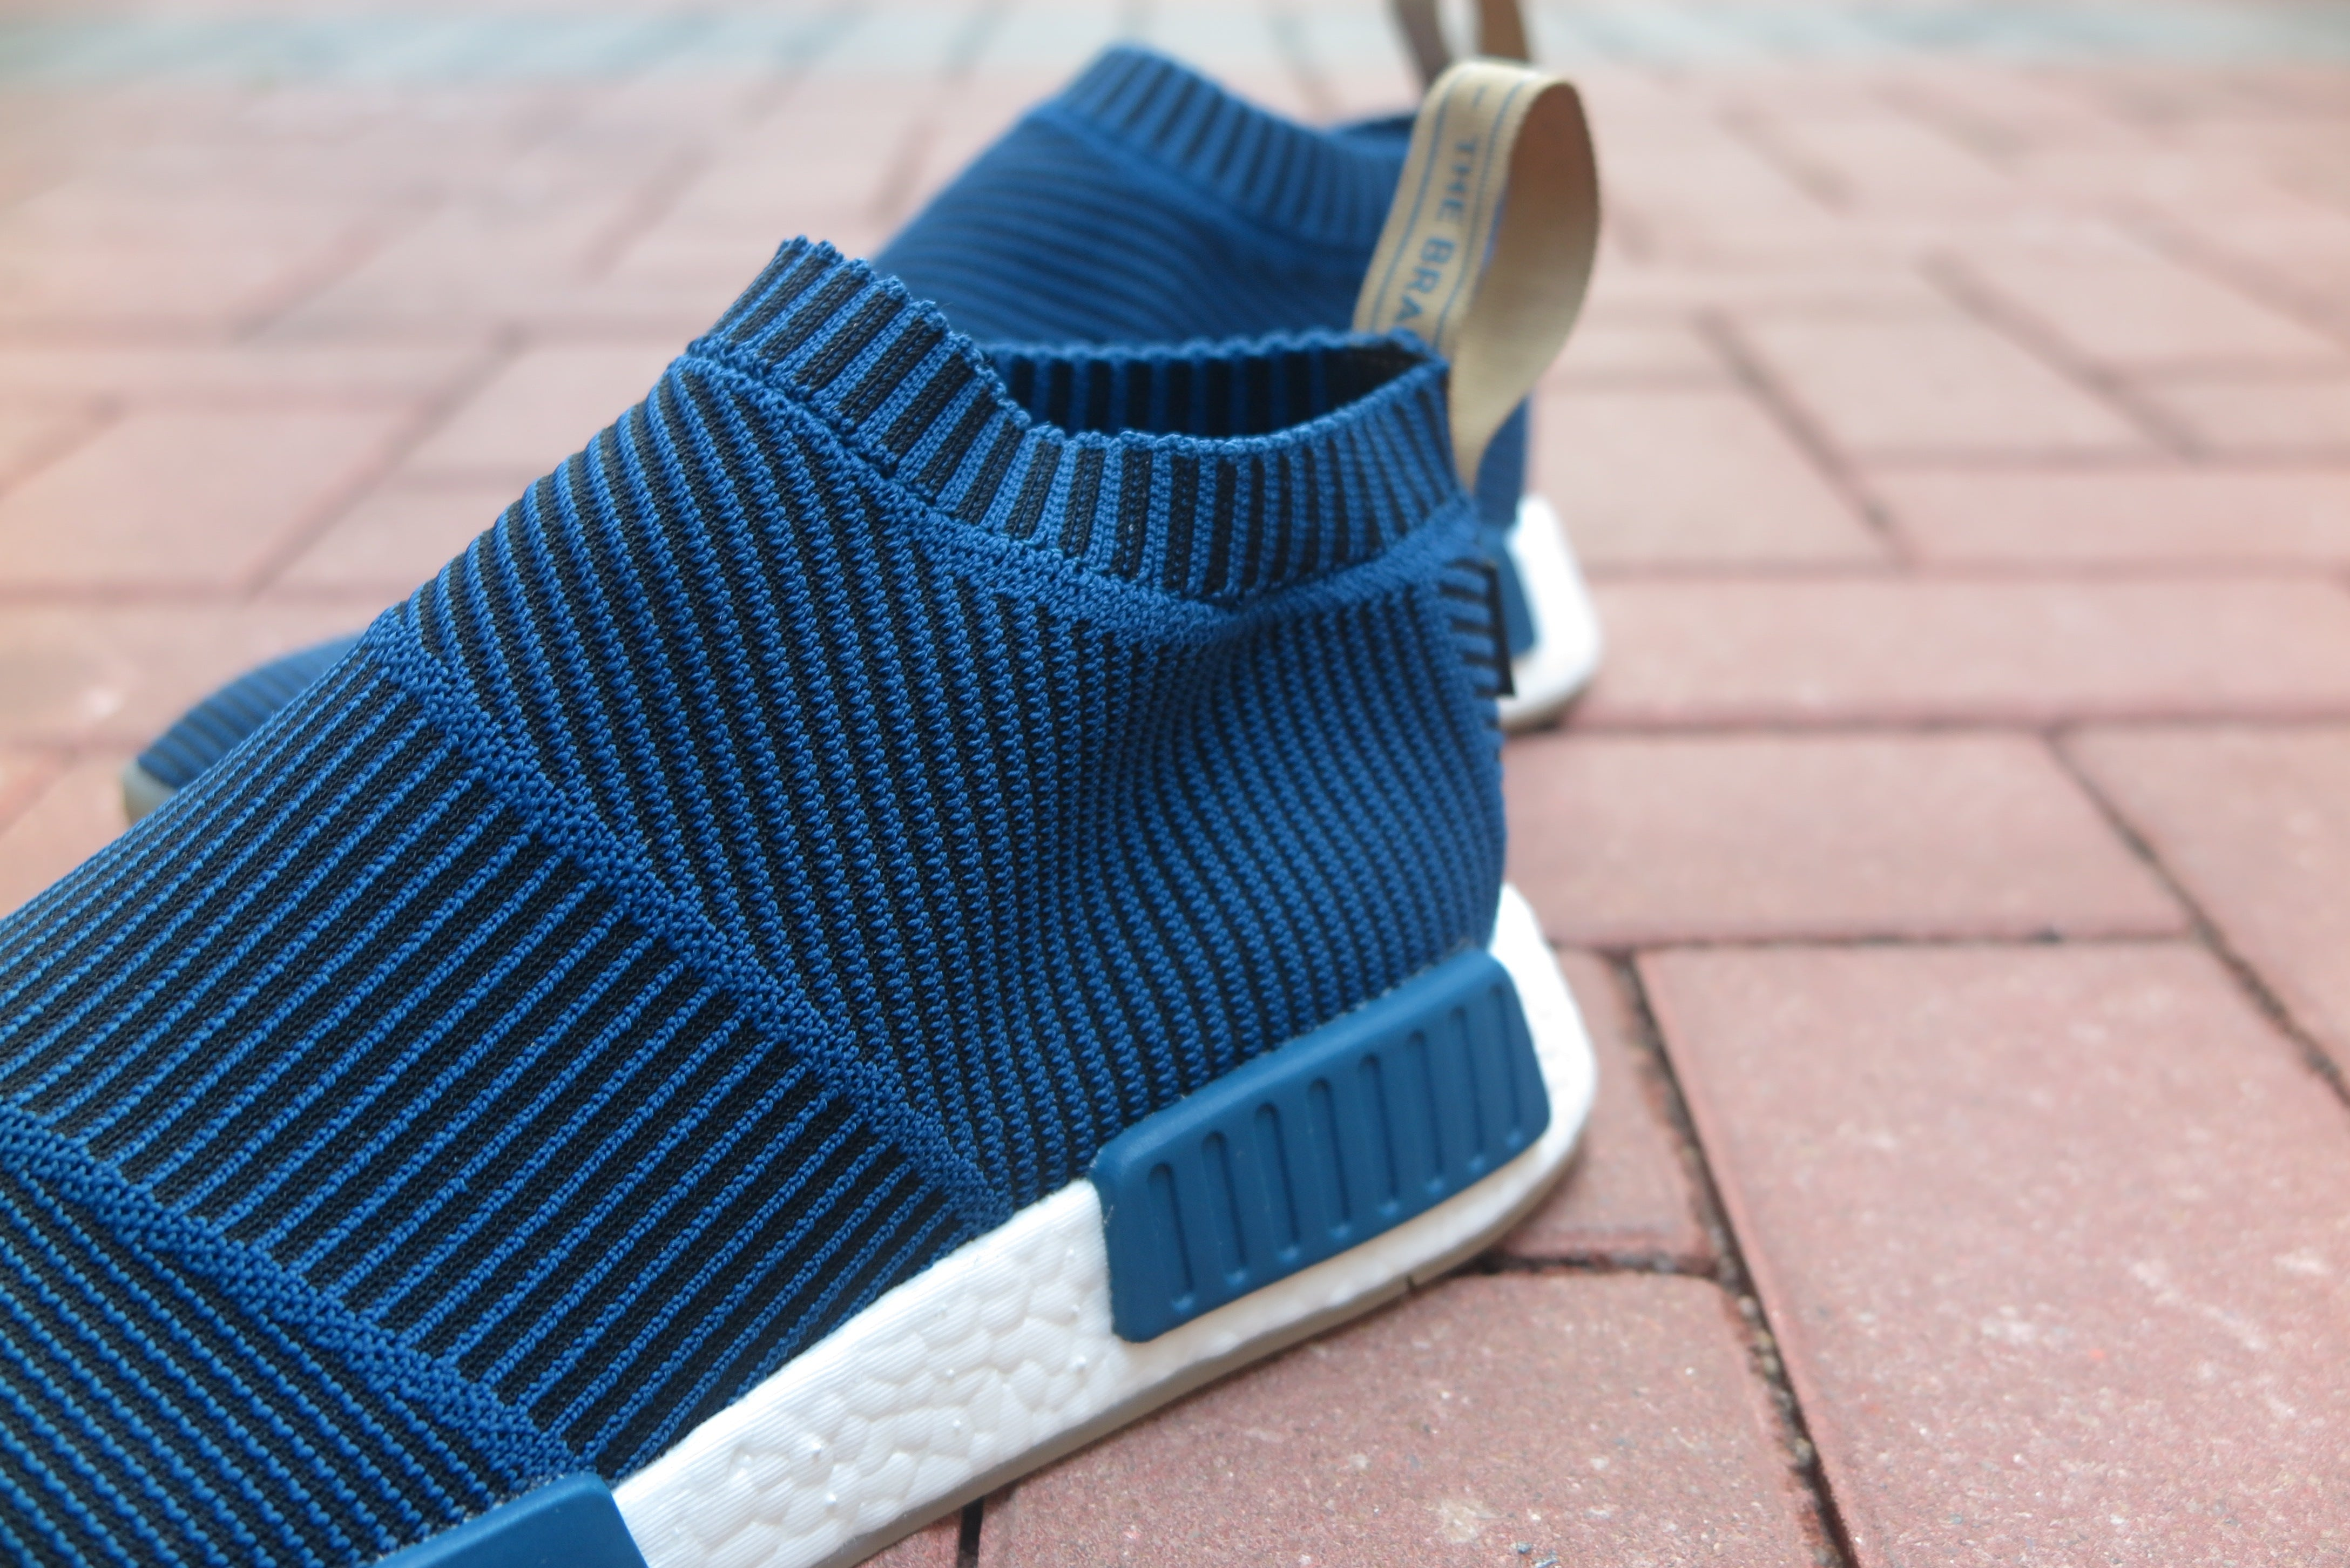 "GORE-TEX® X adidas NMD_CS1 Primeknit ""SNS Exclusive"" - Blue Night/Core Black/Cardboard #AQ0363-Preorder Item-Navy Selected Shop"